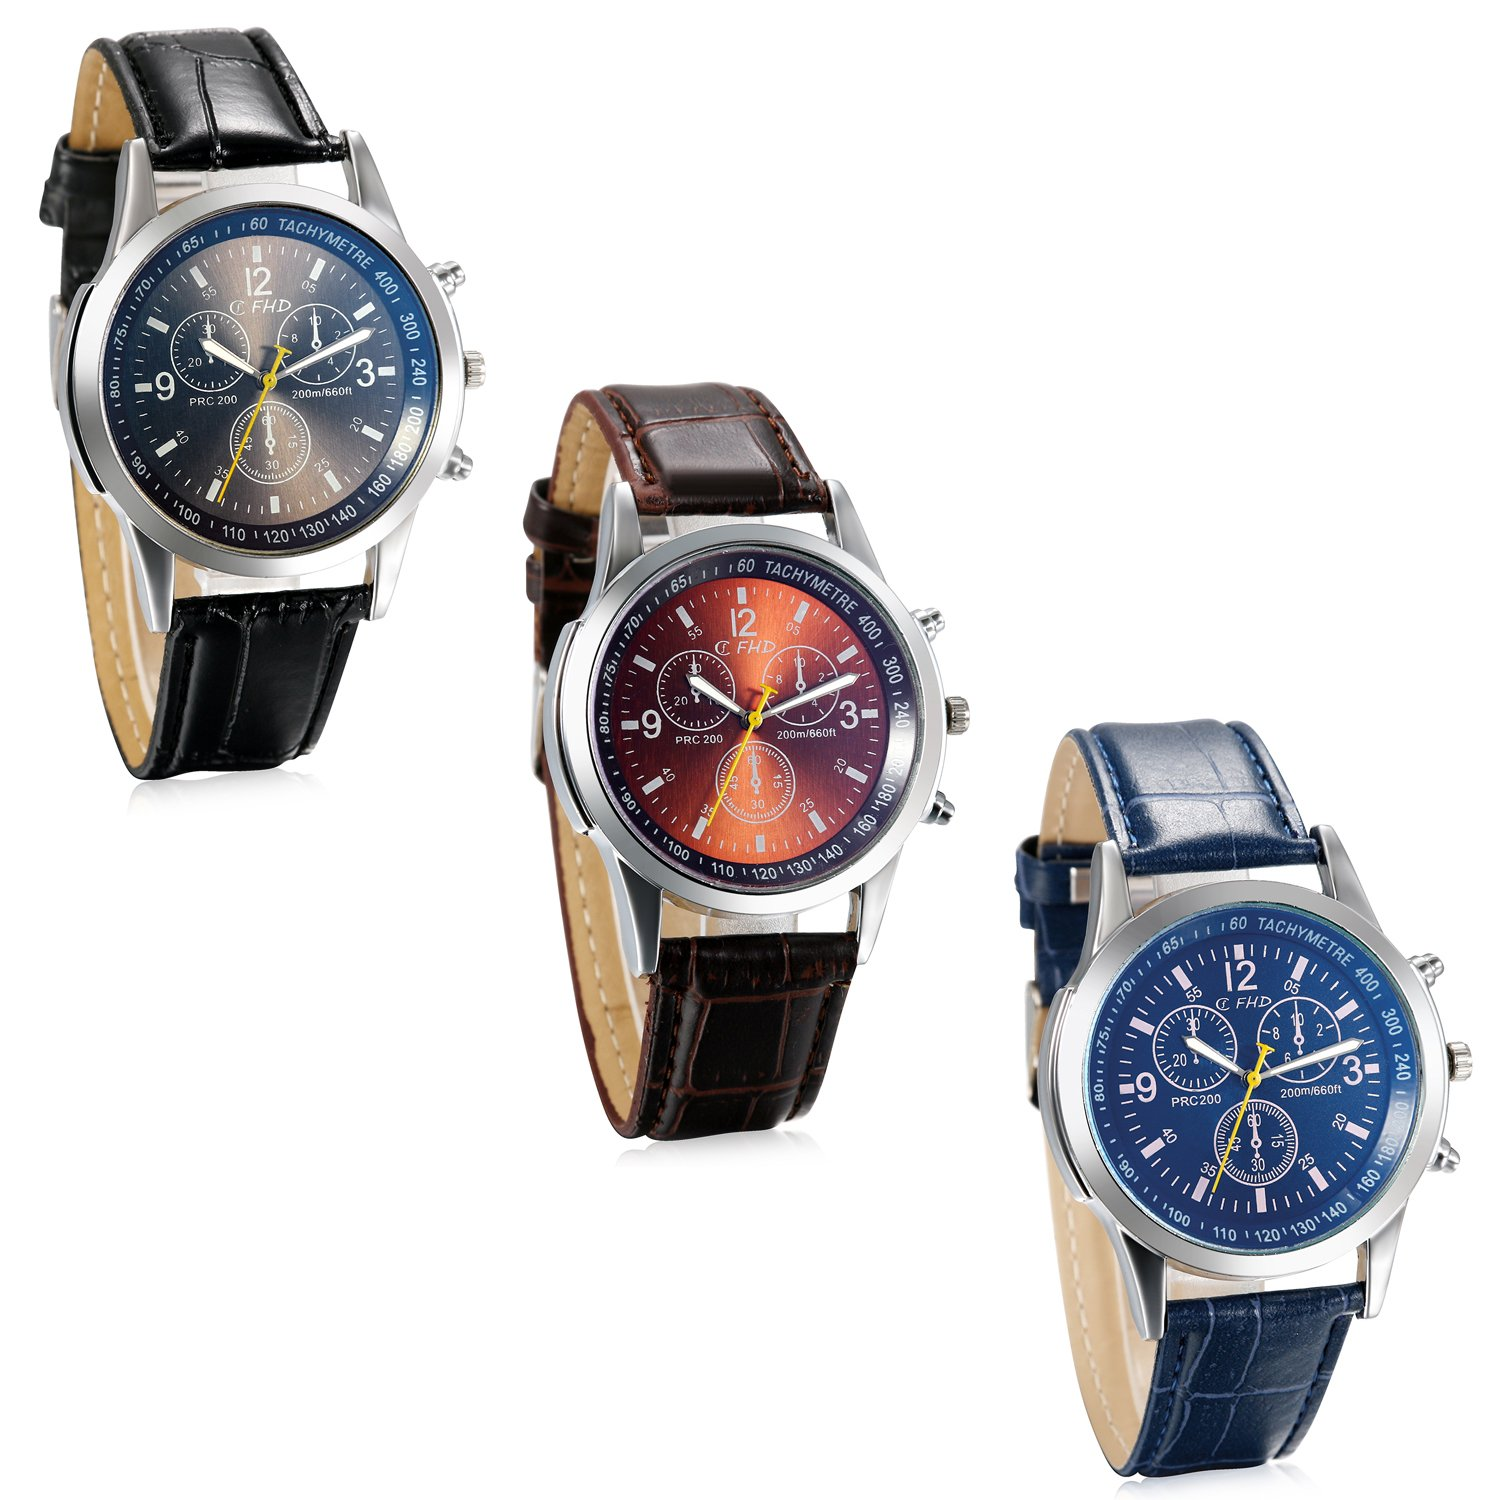 JewelryWe Business Casual Men's Quartz Wrist Watch Dial Leather Strap Watches - Pack of 3